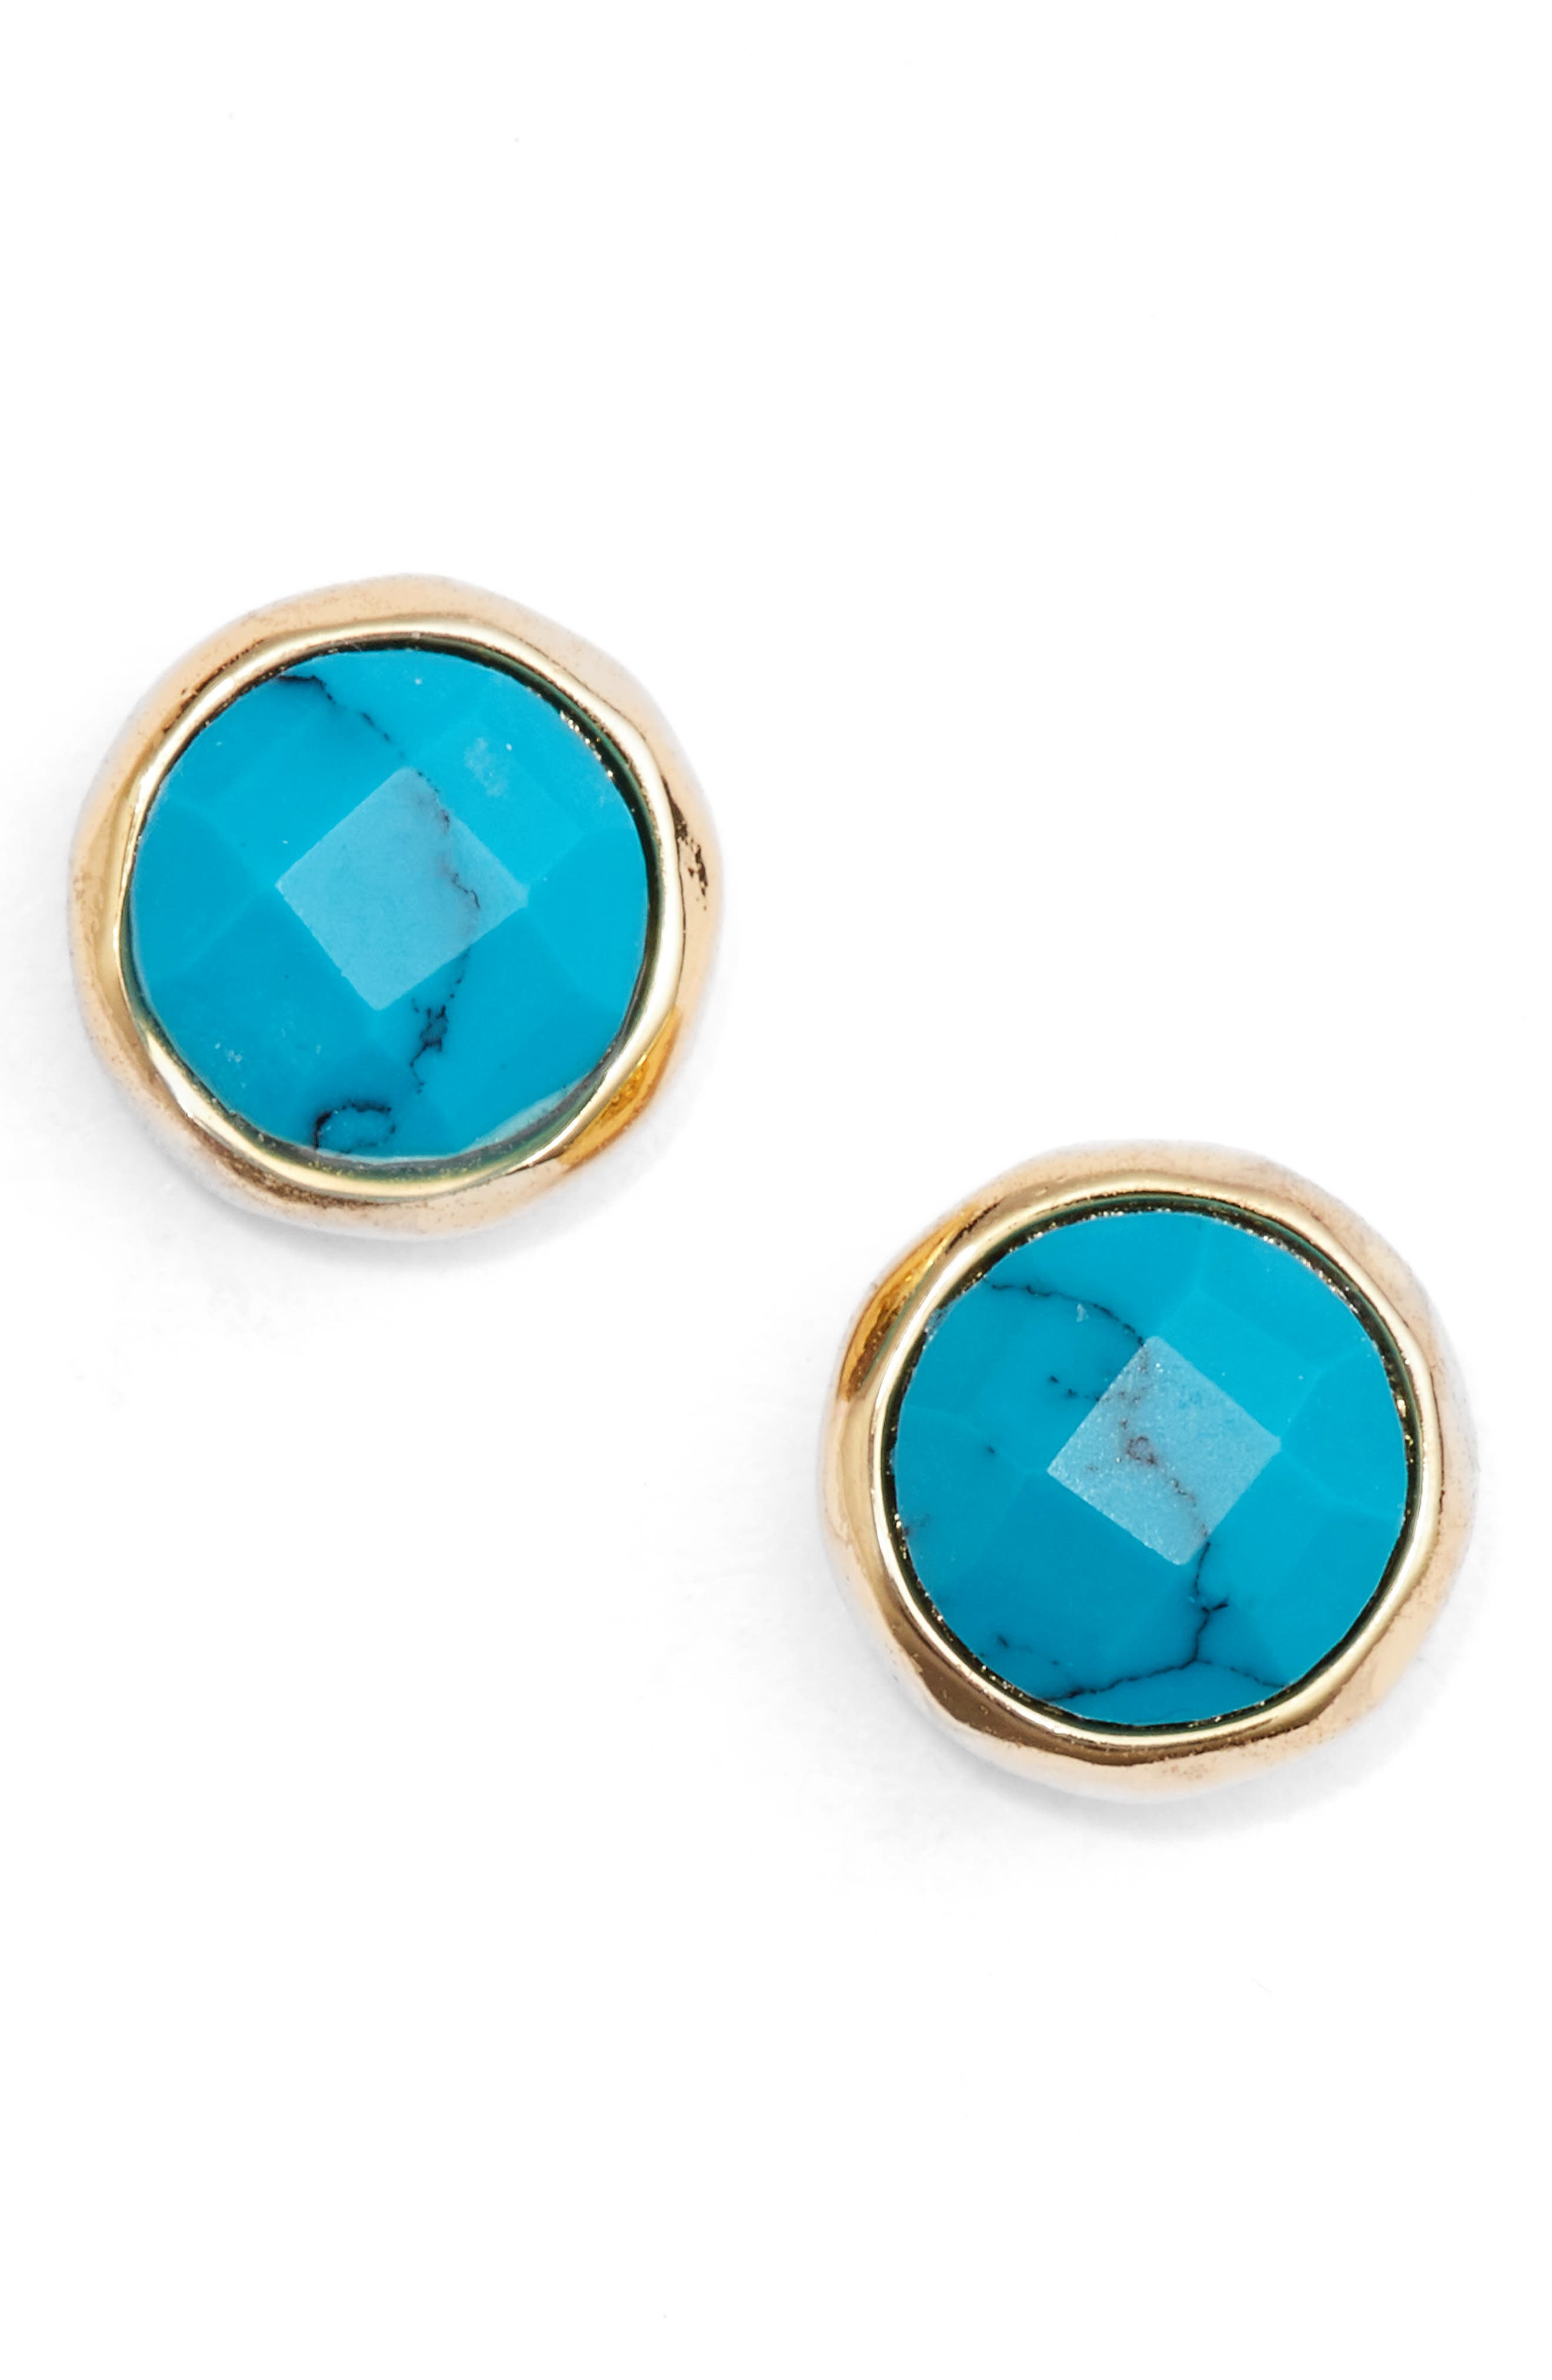 Healing Studs Earrings,                         Main,                         color, TURQUOISE/ GOLD